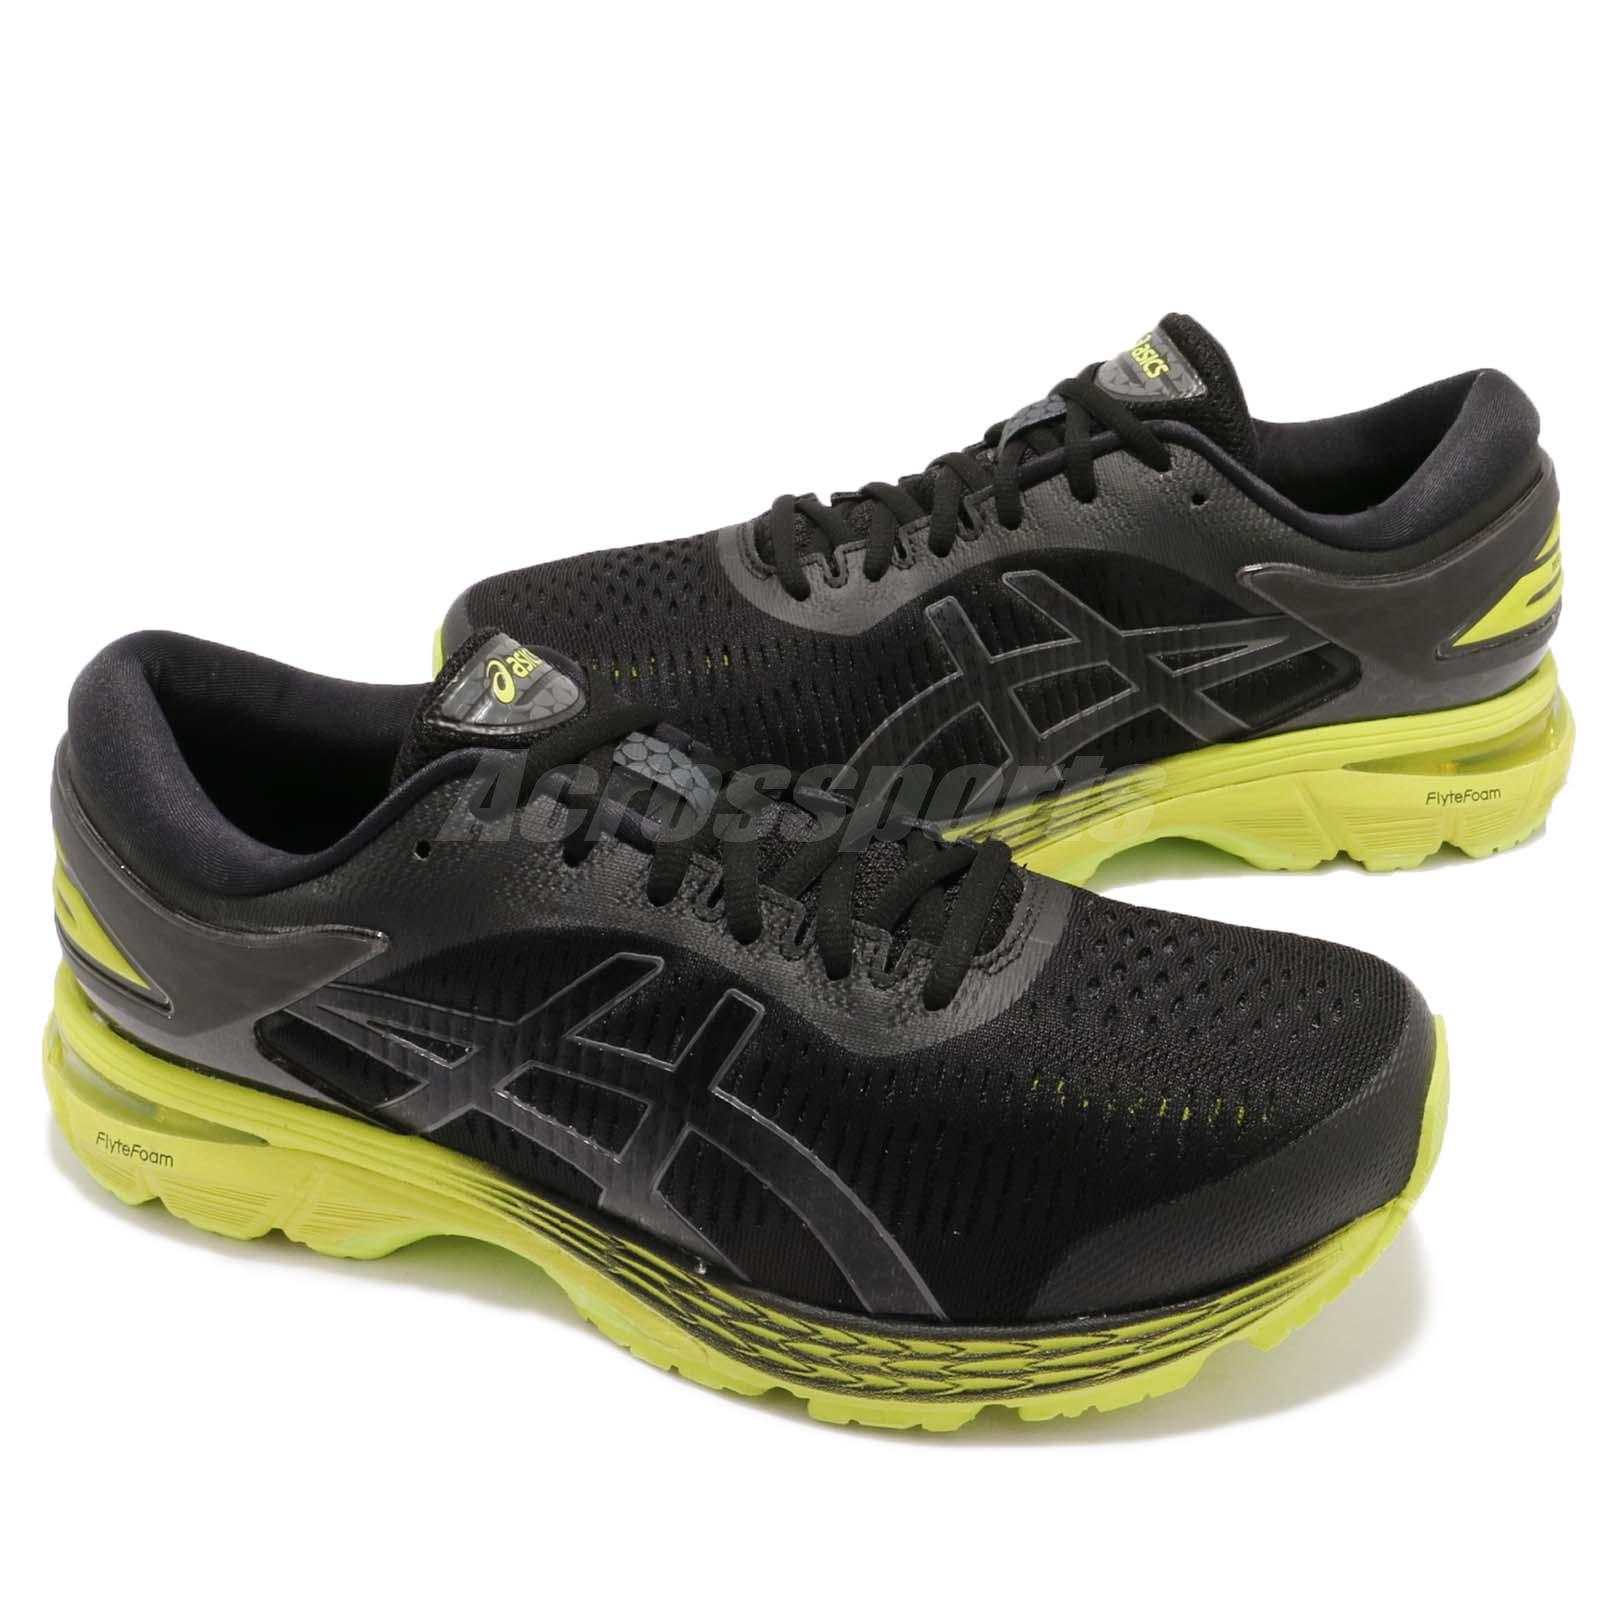 3ee4f9145 Asics Gel-Kayano 25 2E Wide Black Neon Lime Mens Running Shoes ...